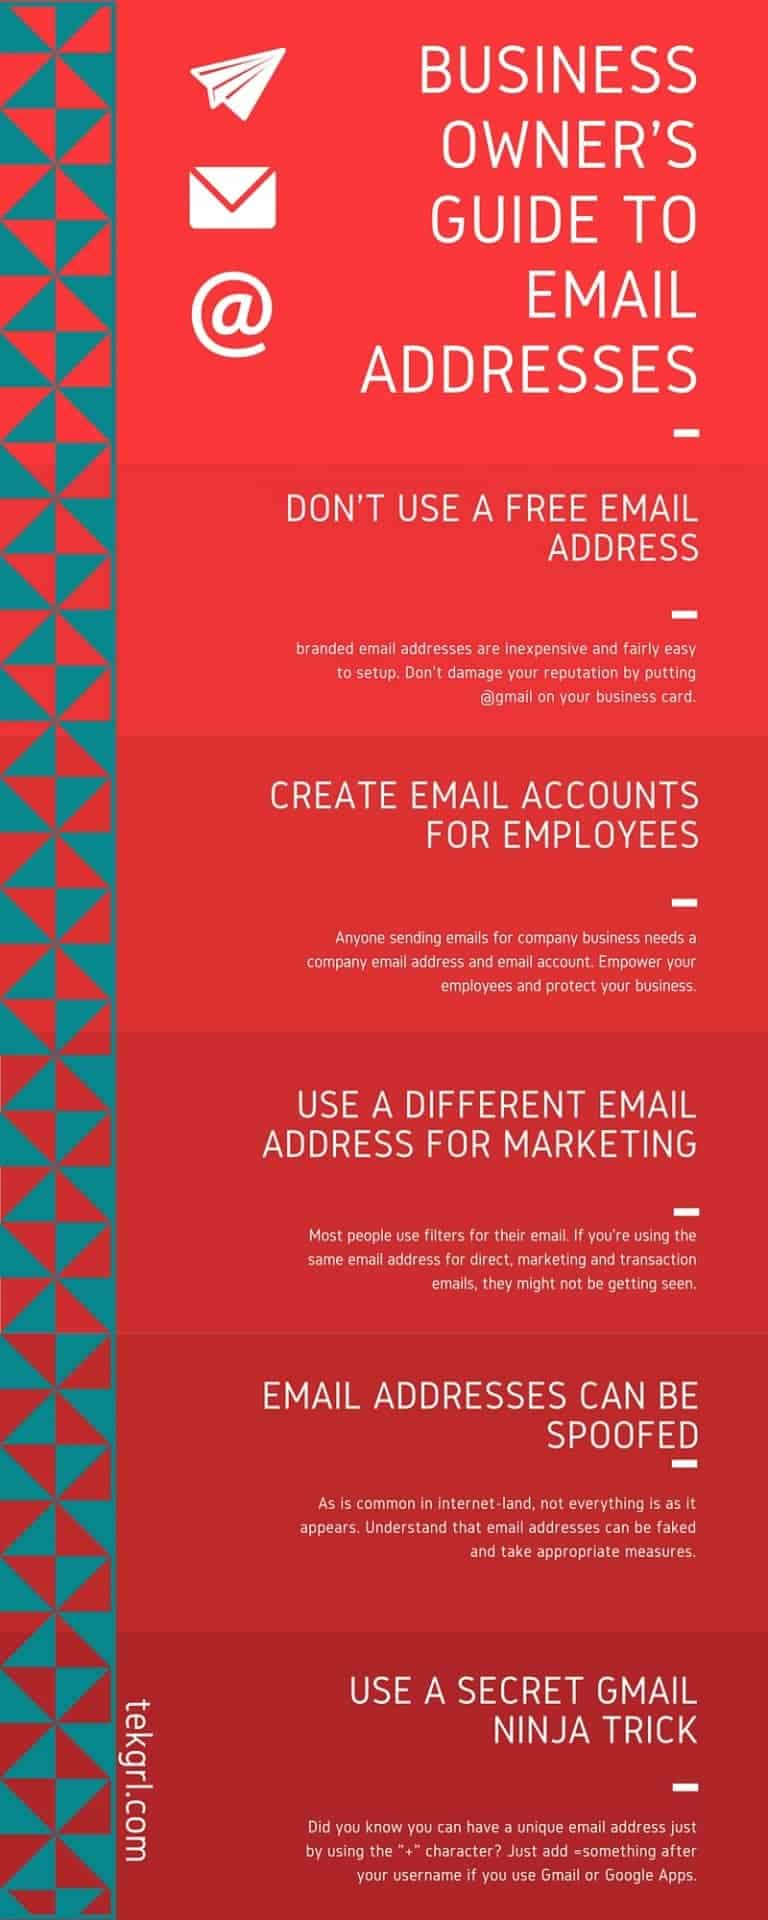 Business Owner's Guide to Email Addresses